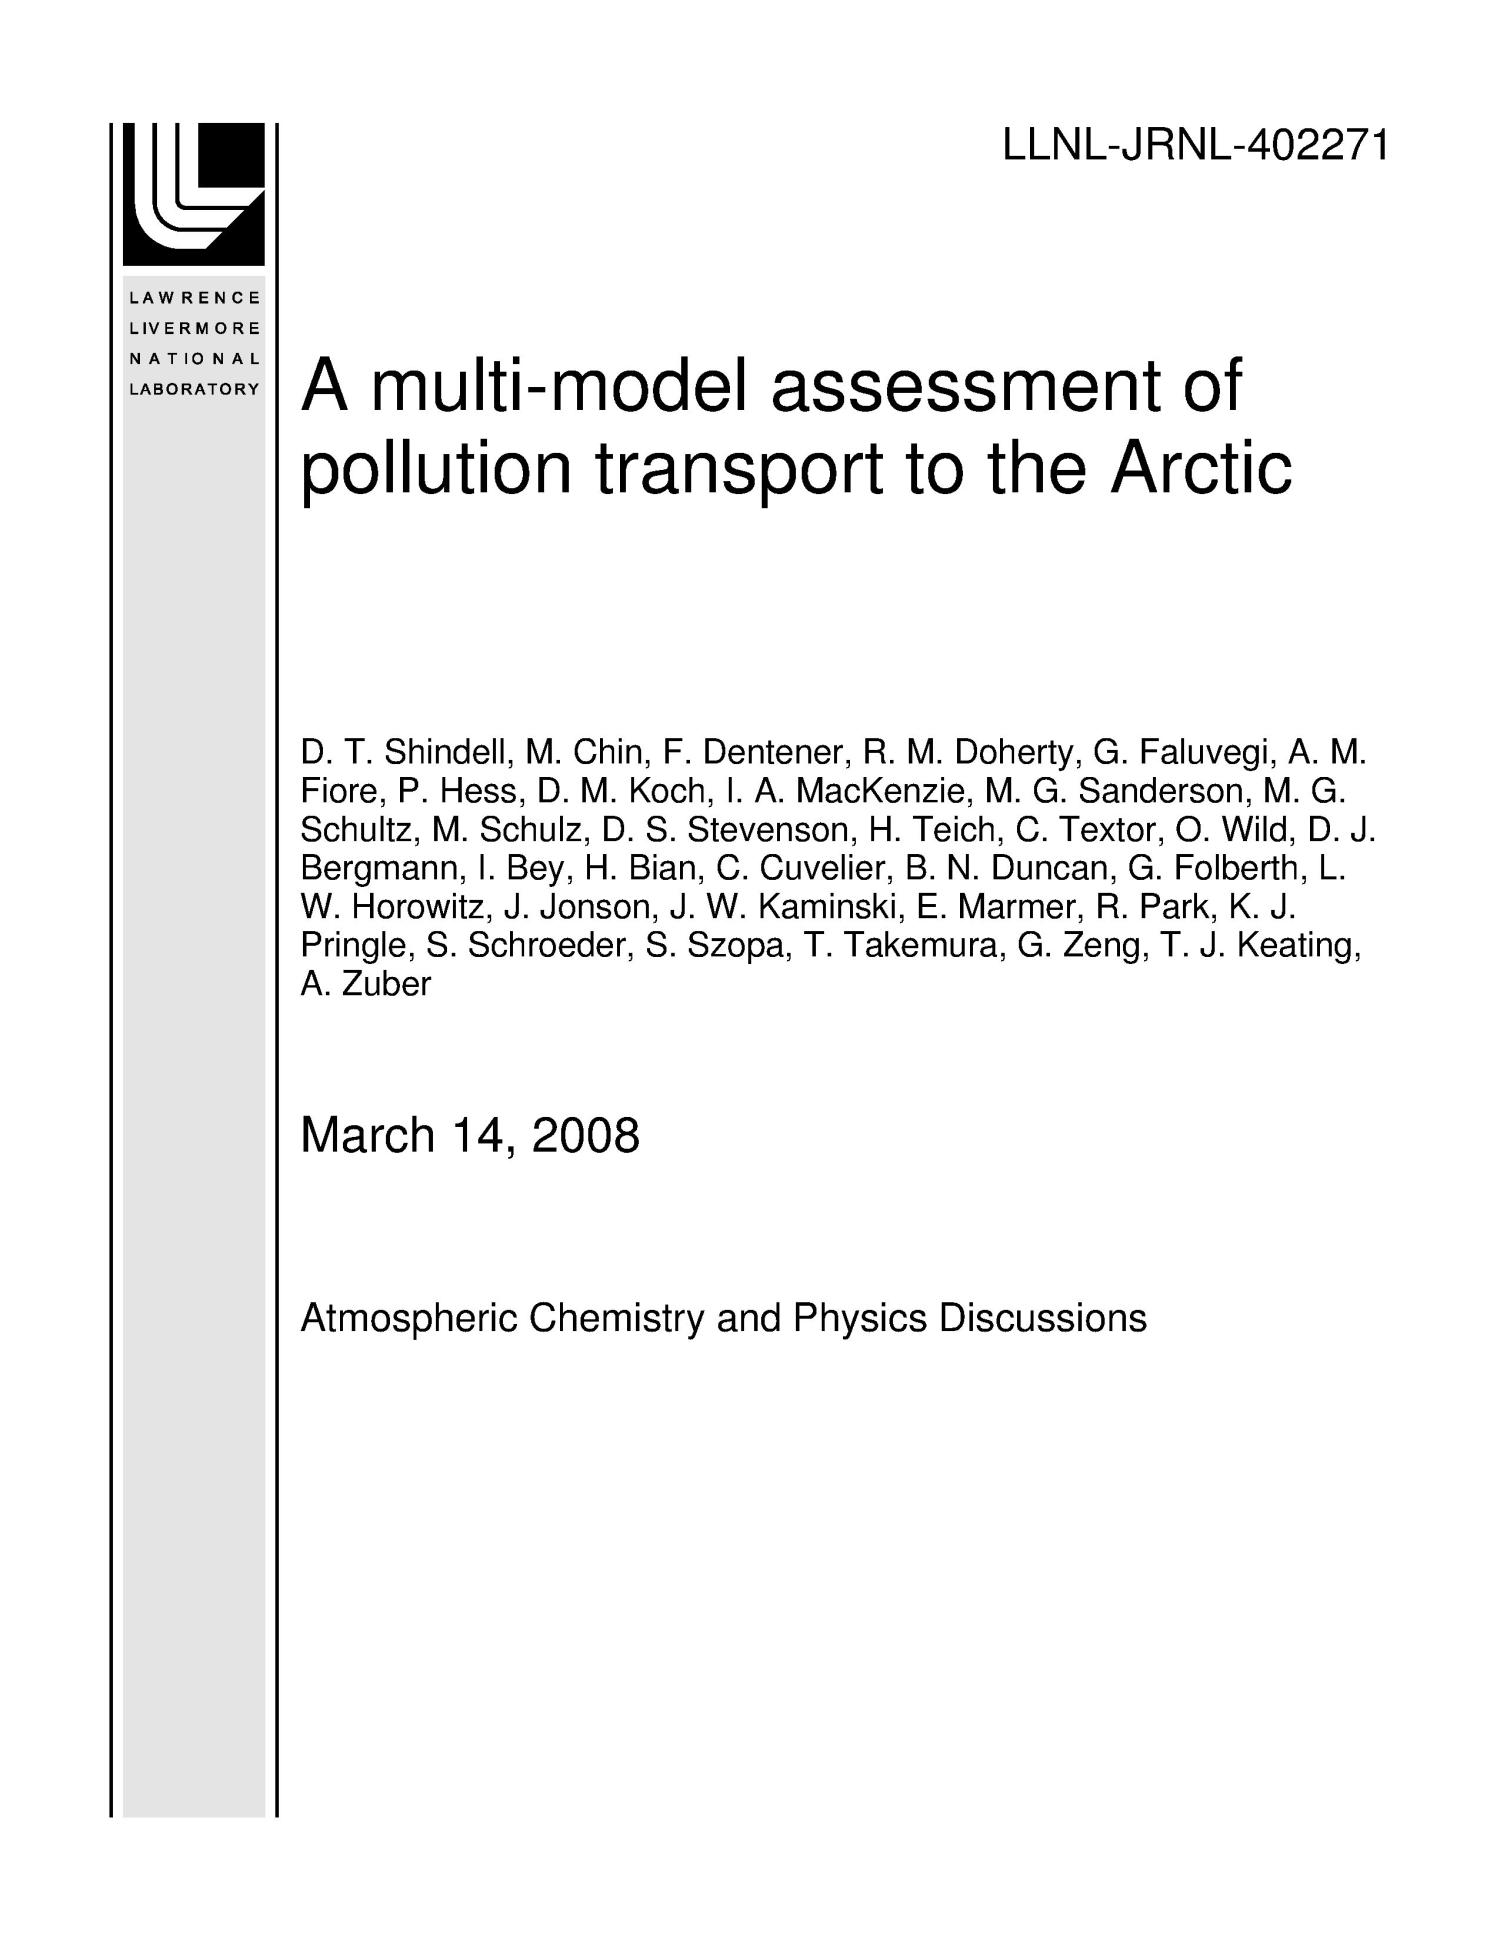 A multi-model assessment of pollution transport to the Arctic                                                                                                      [Sequence #]: 1 of 54